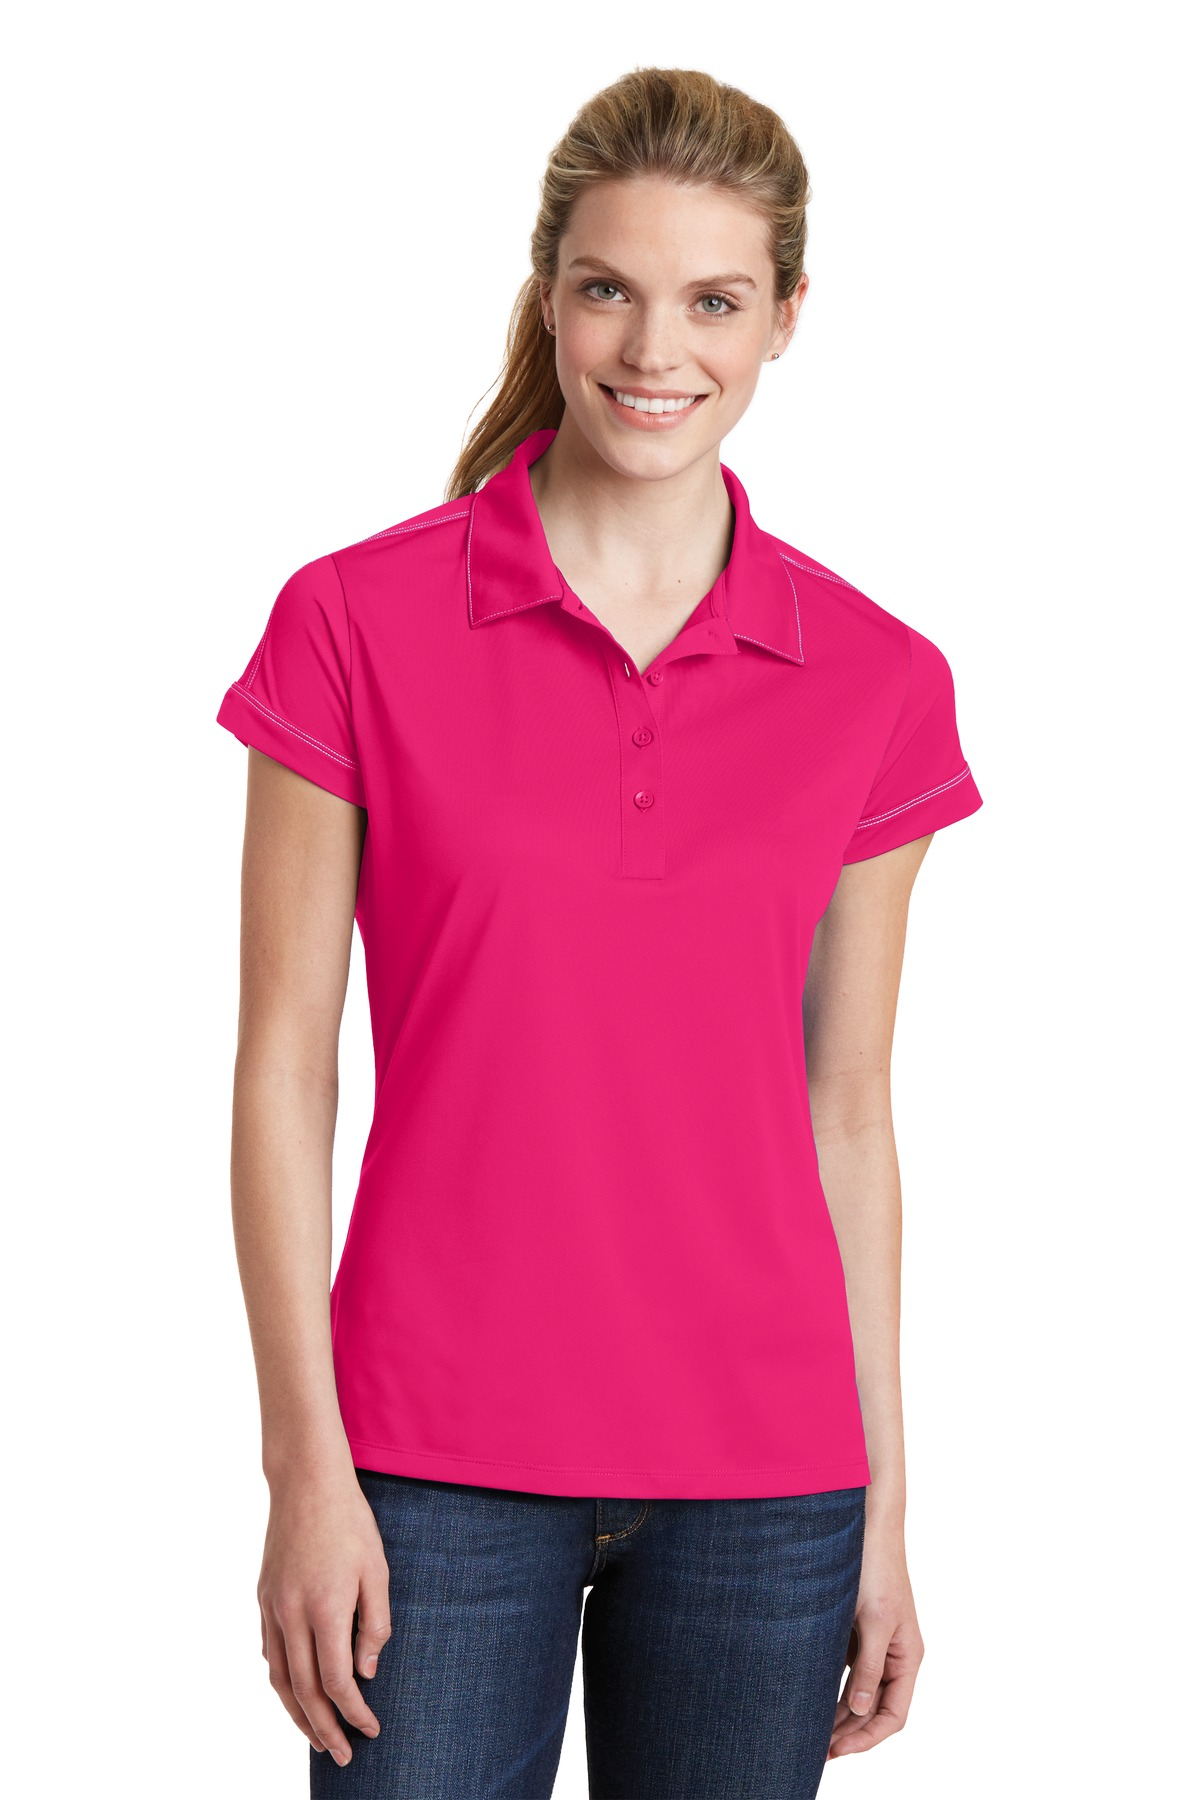 Sport-Tek ®  Ladies Contrast Stitch Micropique Sport-Wick® Polo. LST659 - Pink Raspberry